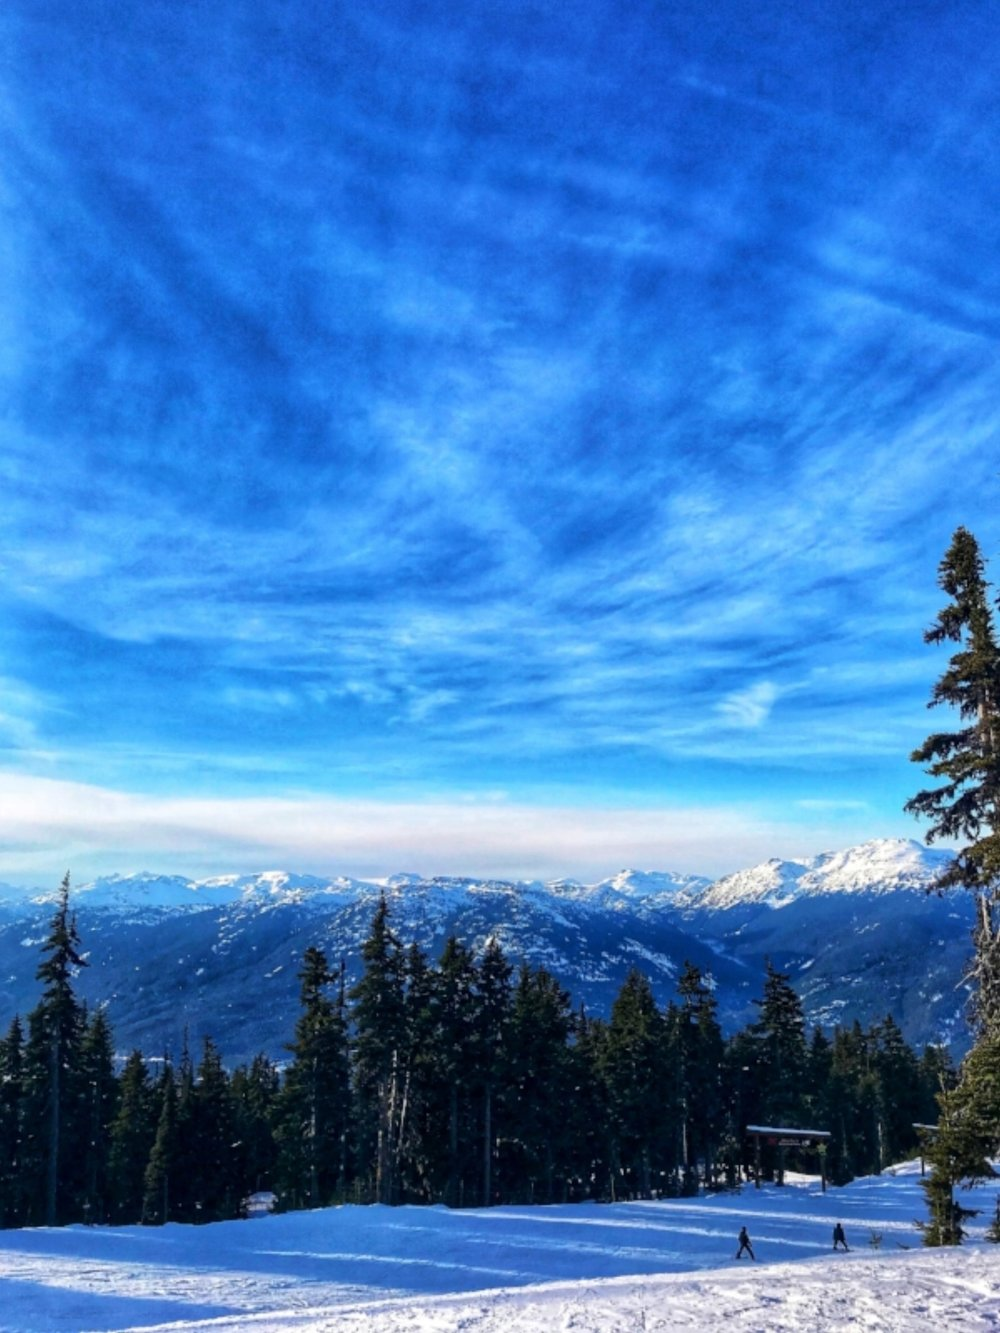 Whistler Blackcomb Mountain Hosts will show you new terrain - and beautiful views!